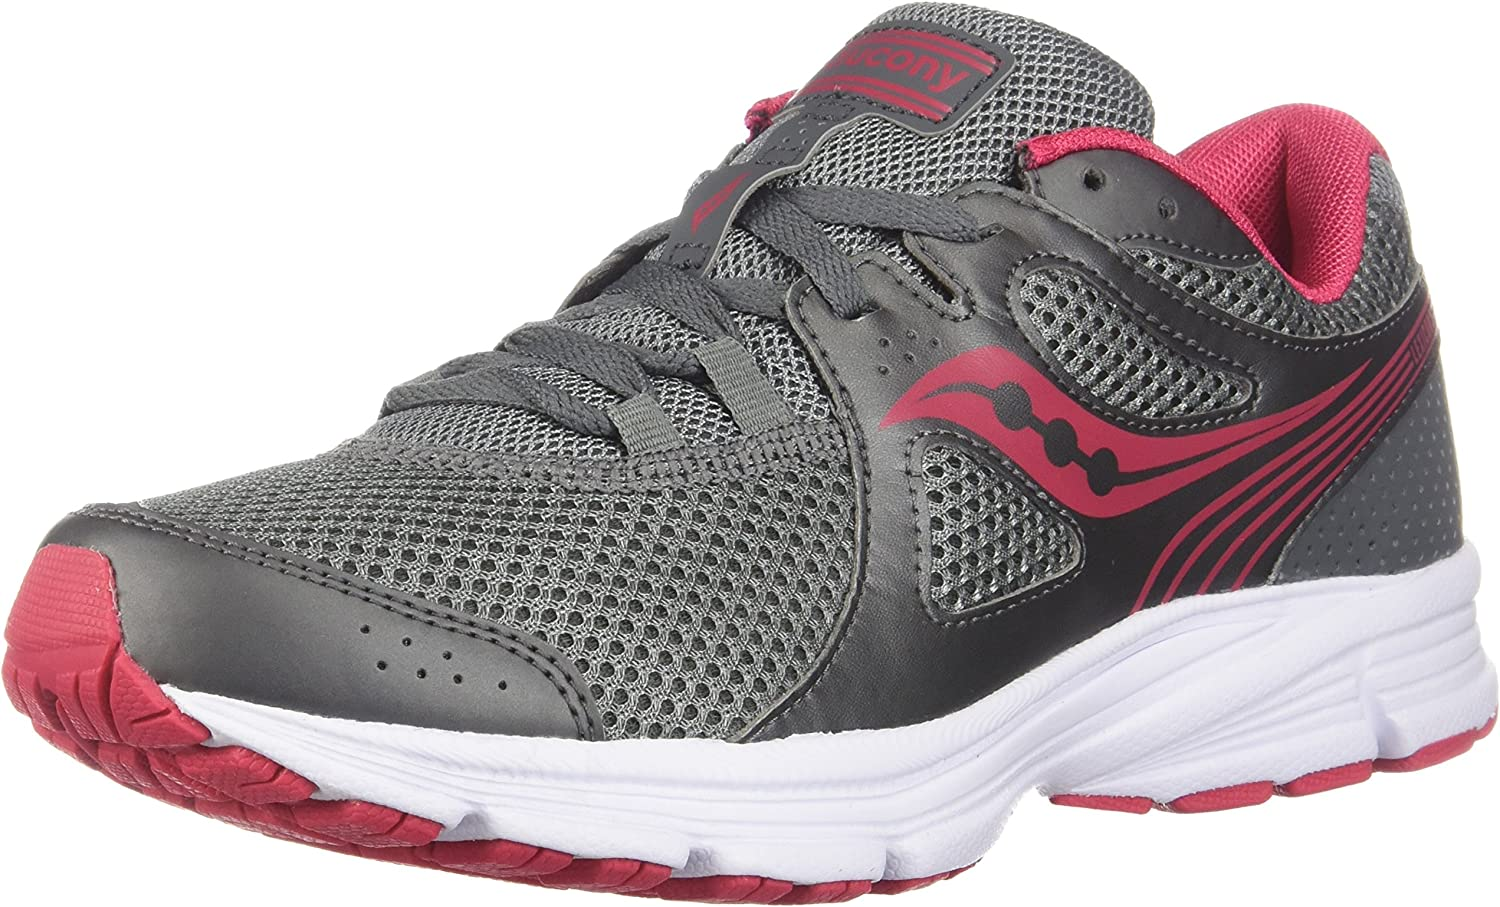 Saucony Women's Lexicon 3 Running shoes